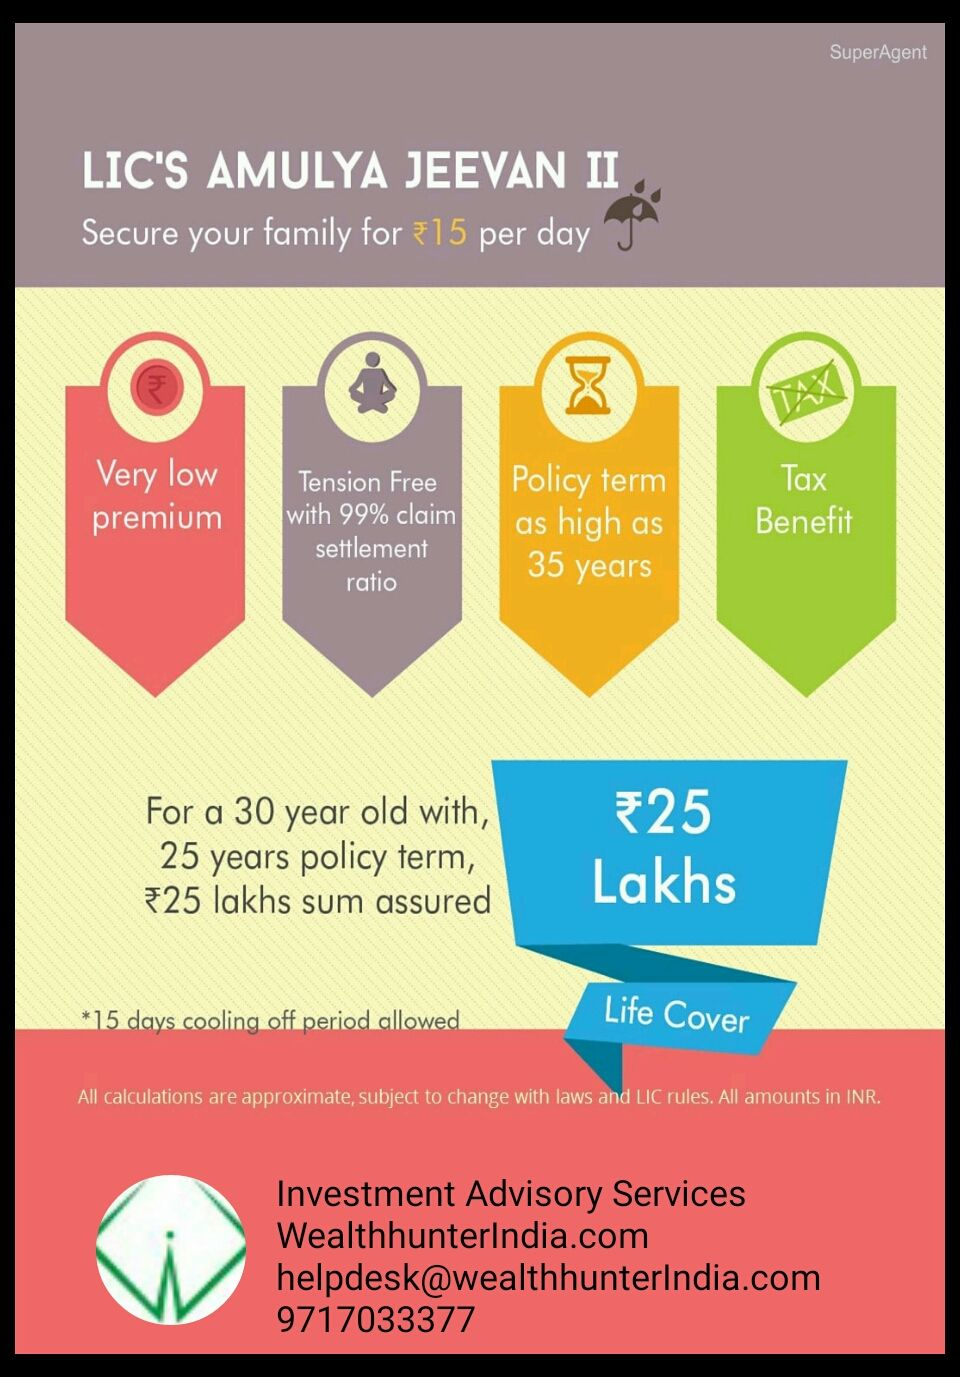 Pin By Wealthhunter India On Life Insurance Life Cover Life